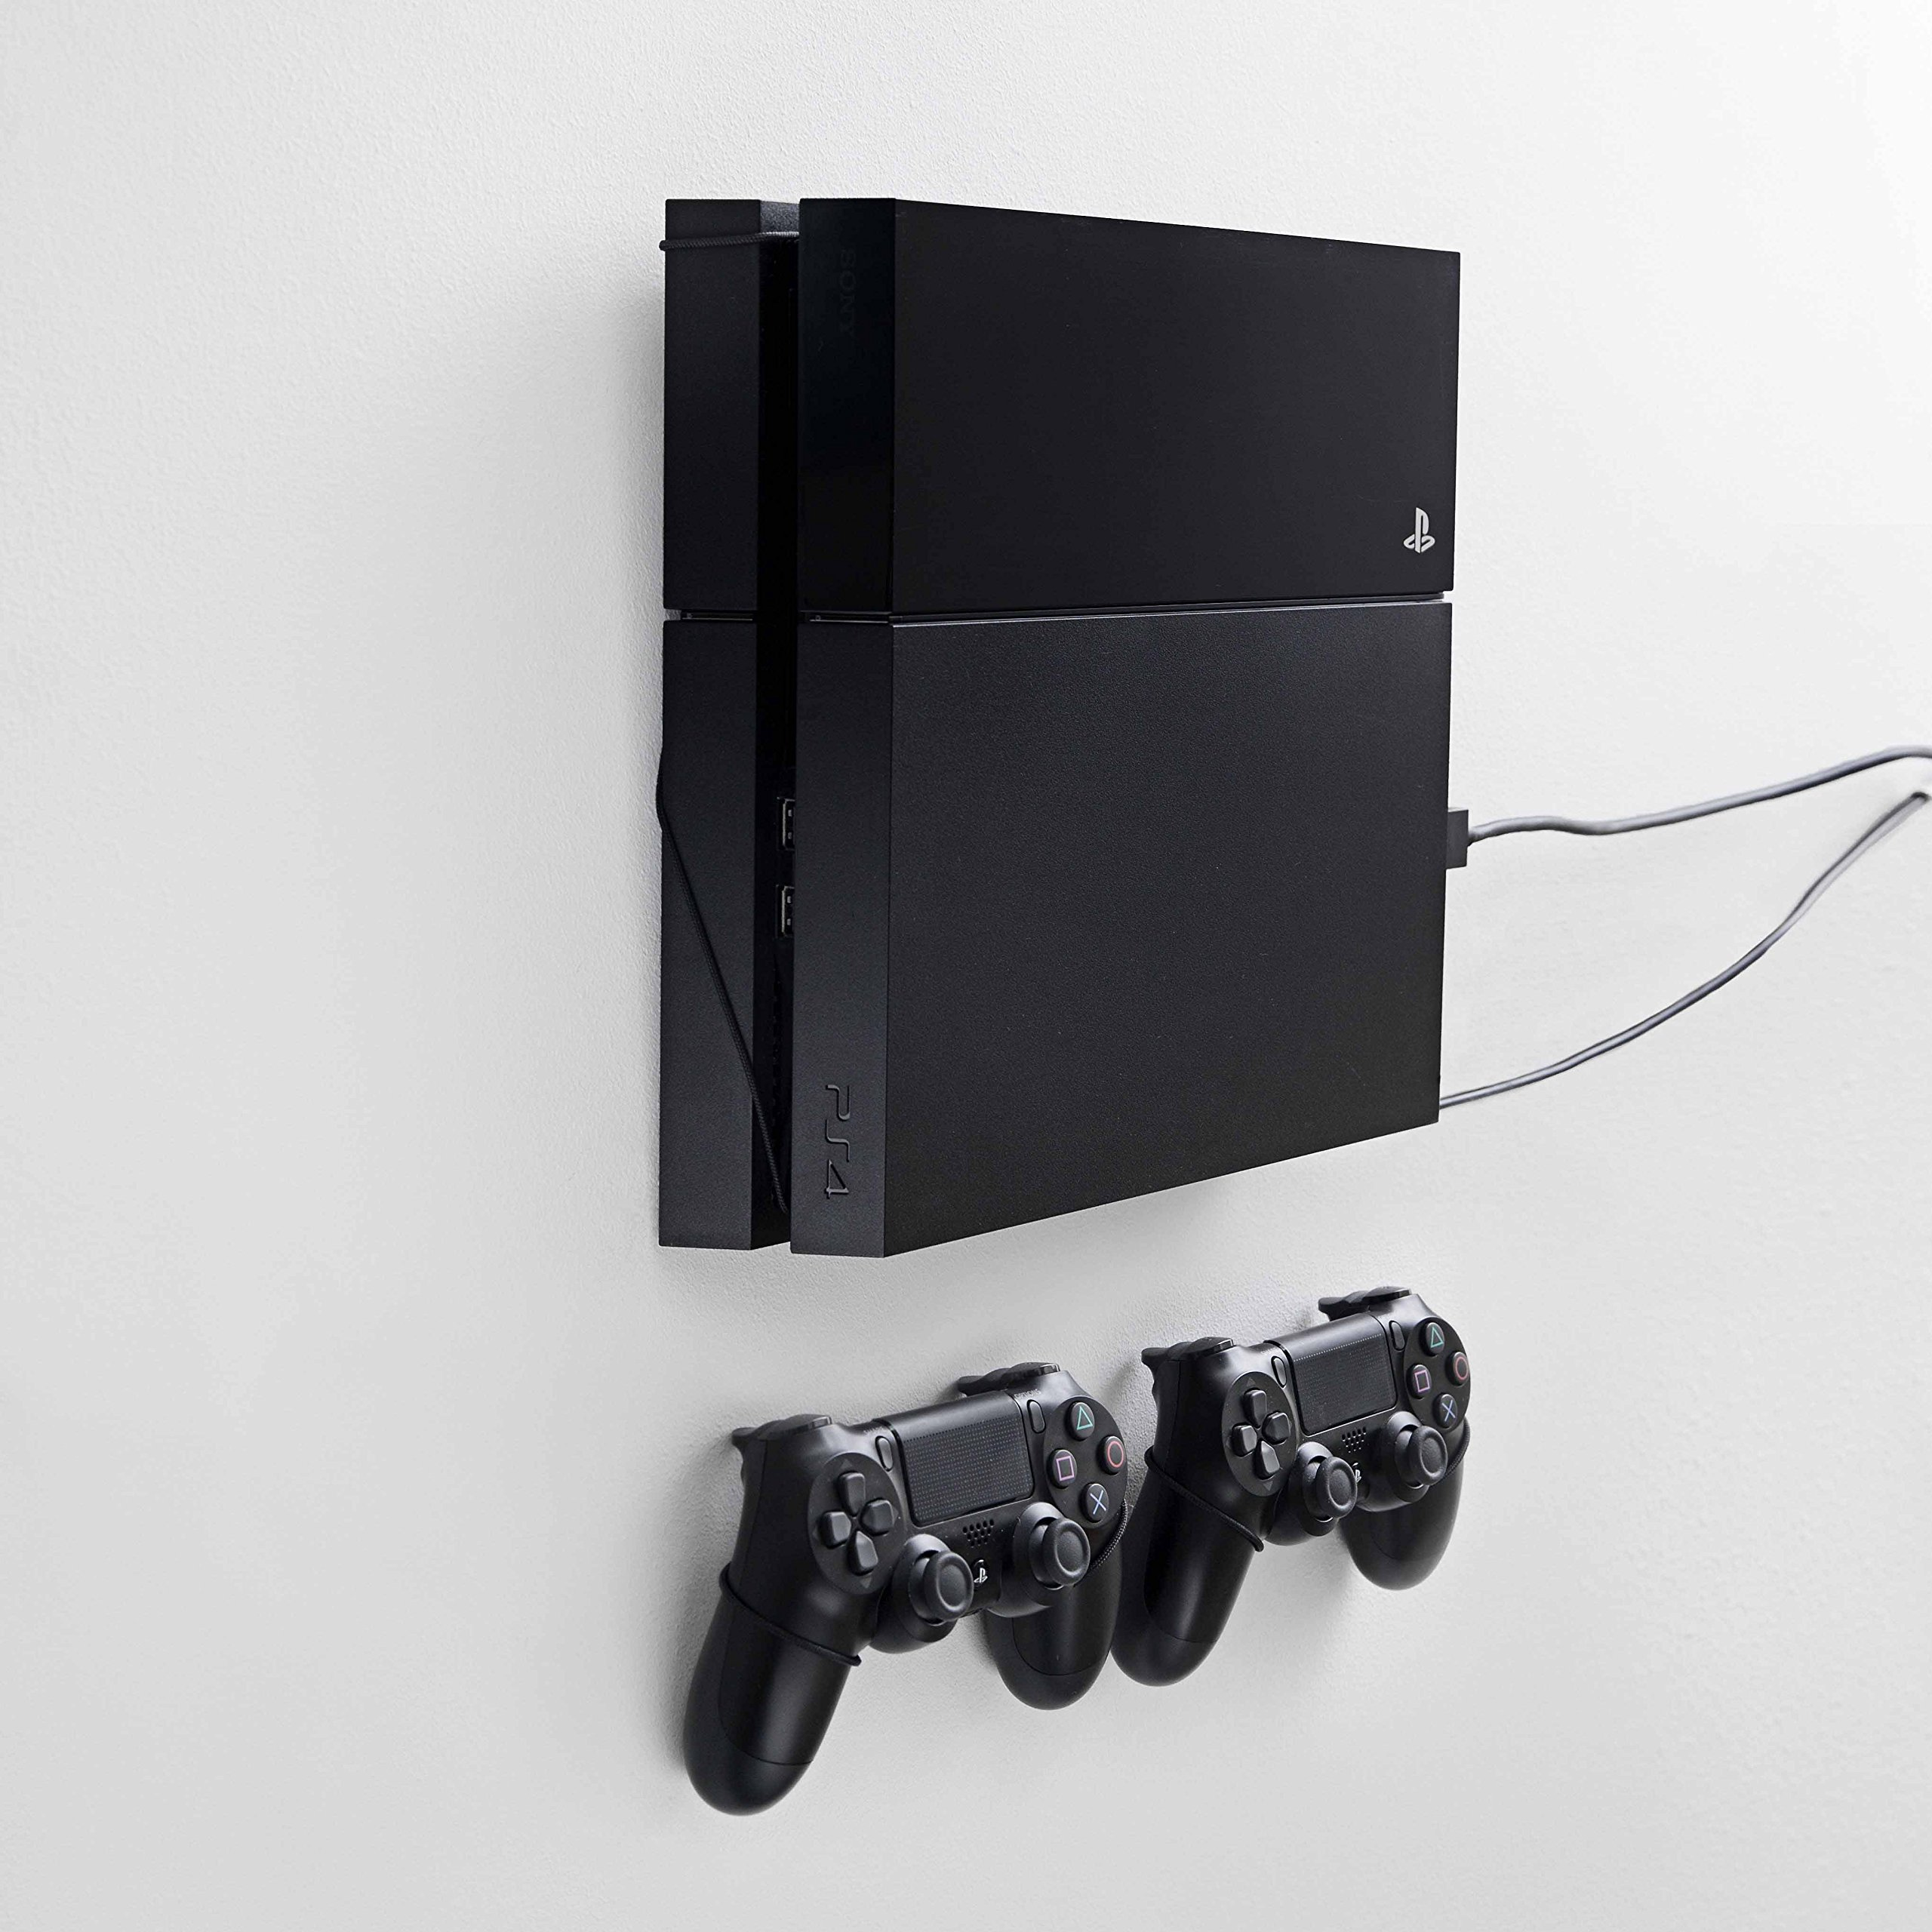 Wall mount for PS4 Original by FLOATING GRIP® - This package (BUNDLE) incl. mounts for 1x console and 2x controllers. Color: Black. Patent pending and proprietary design by FLOATING GRIP®